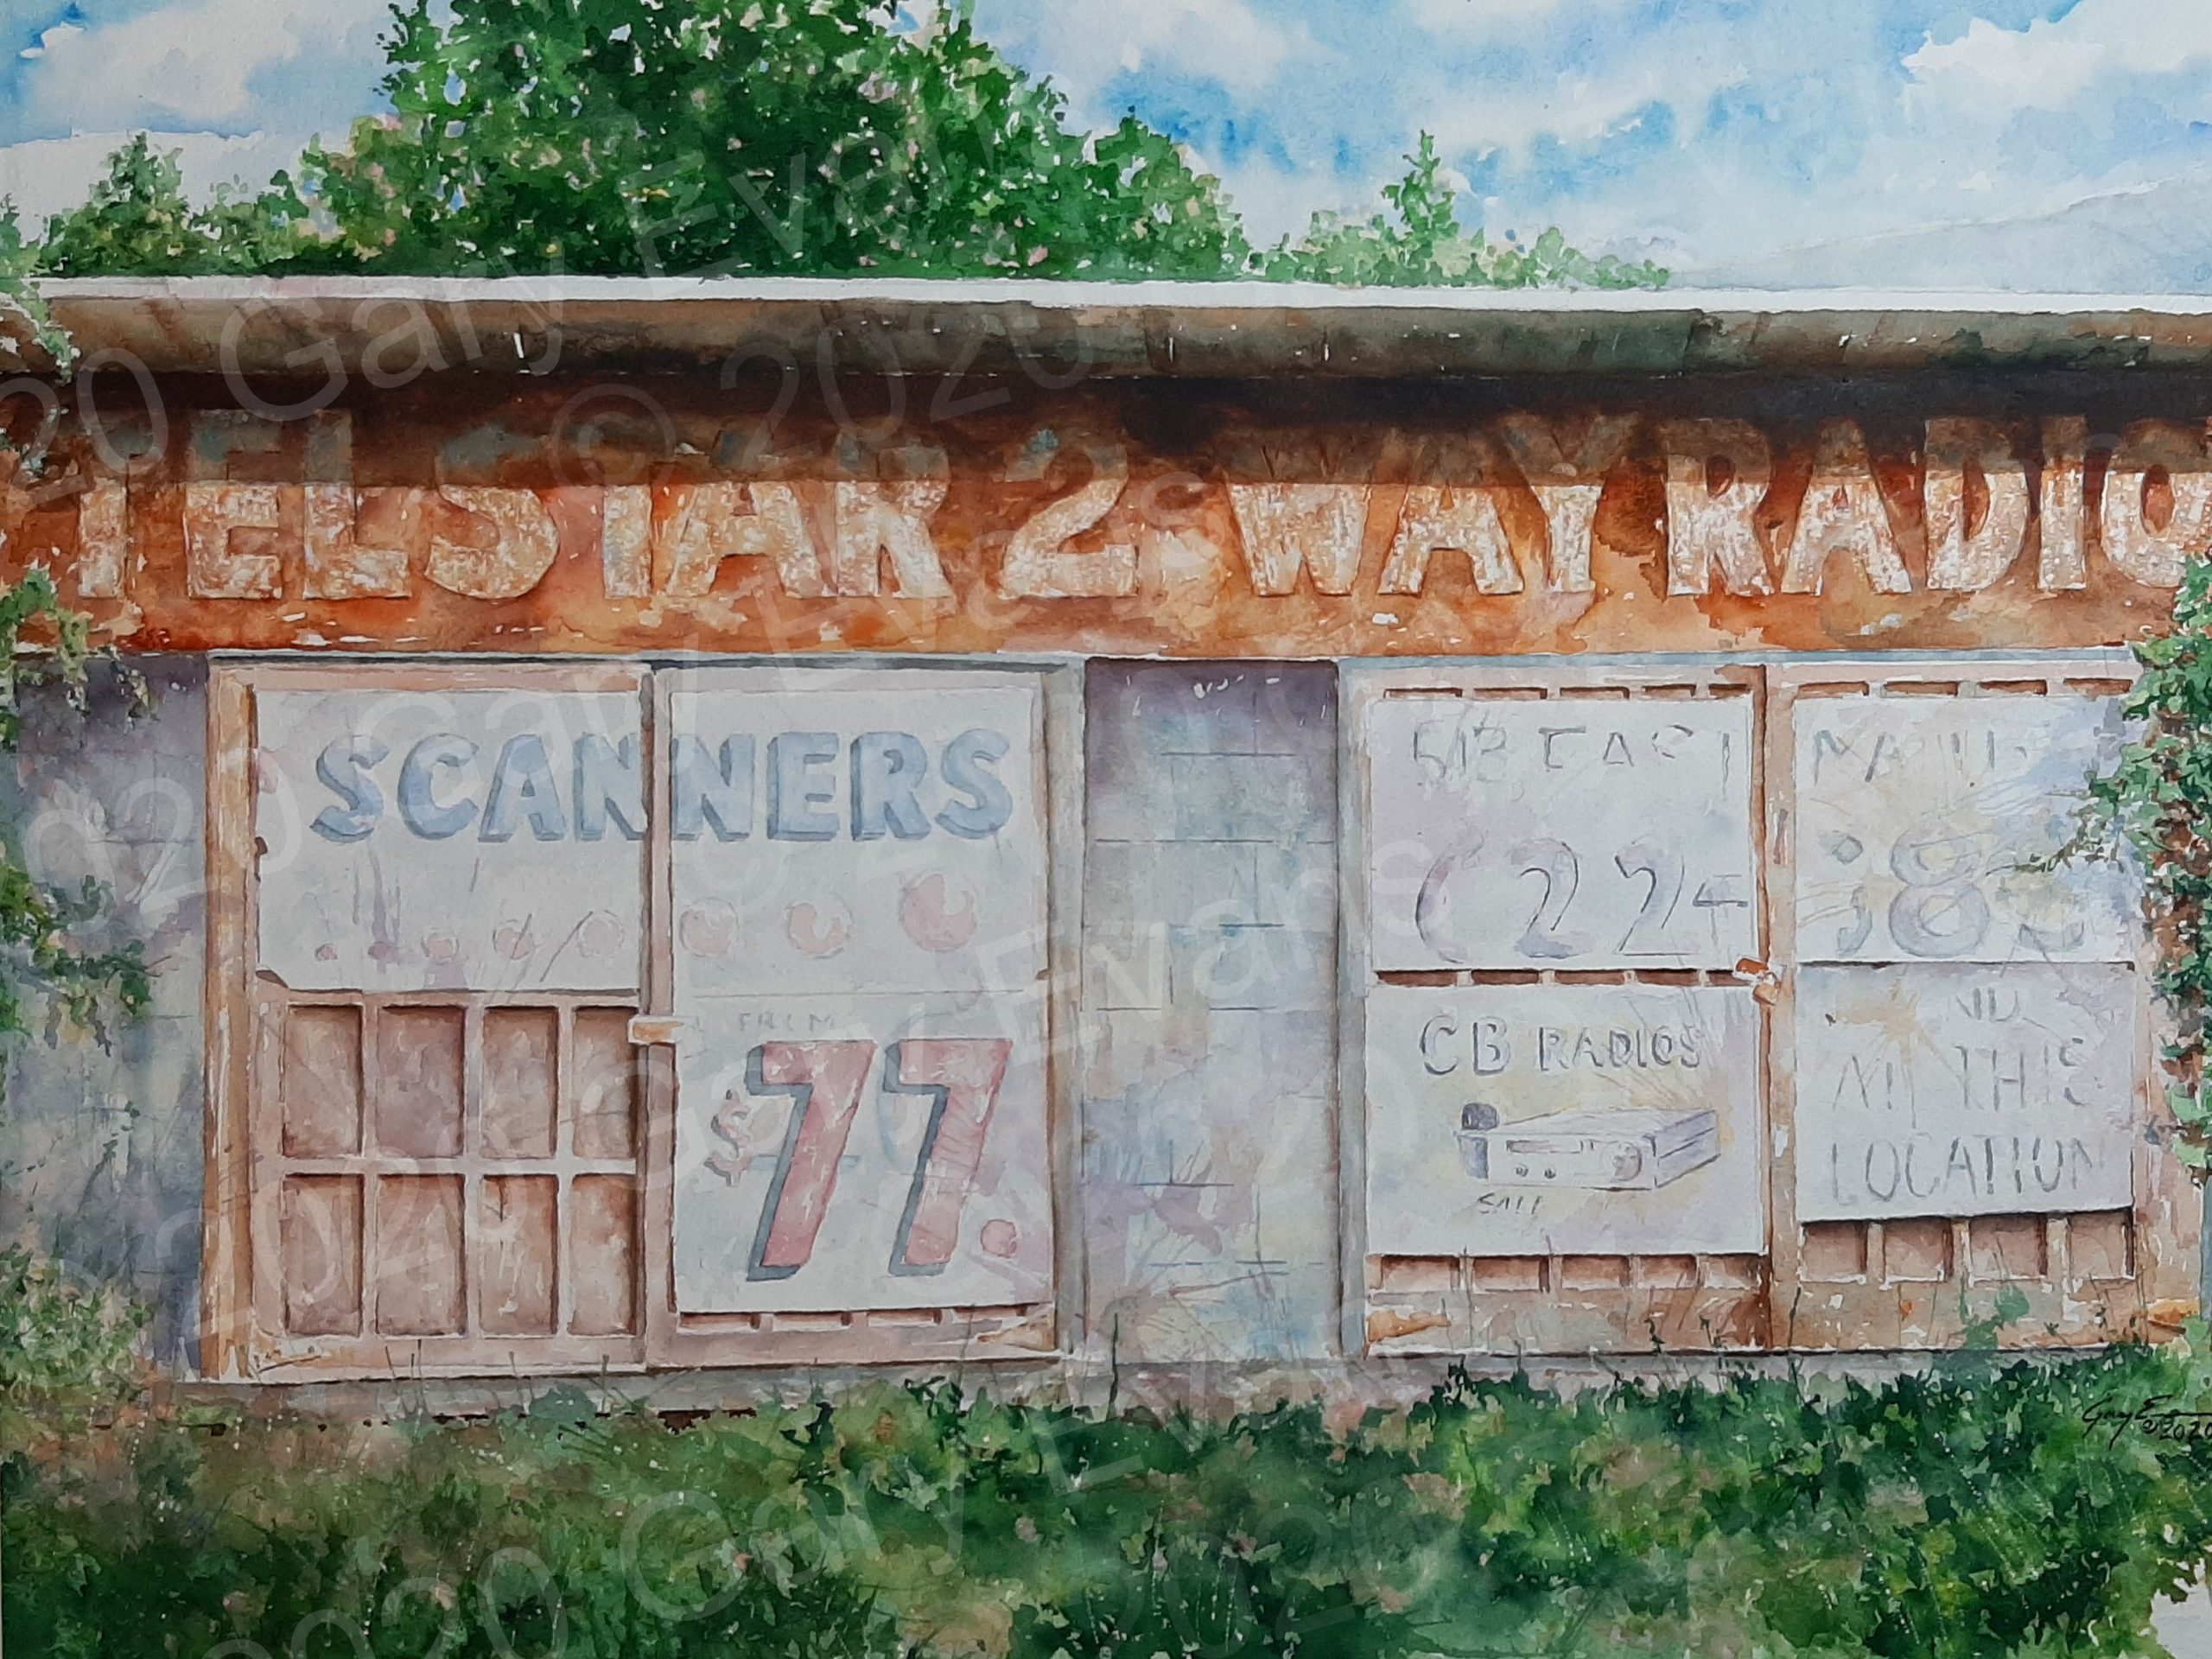 Scanners Shack